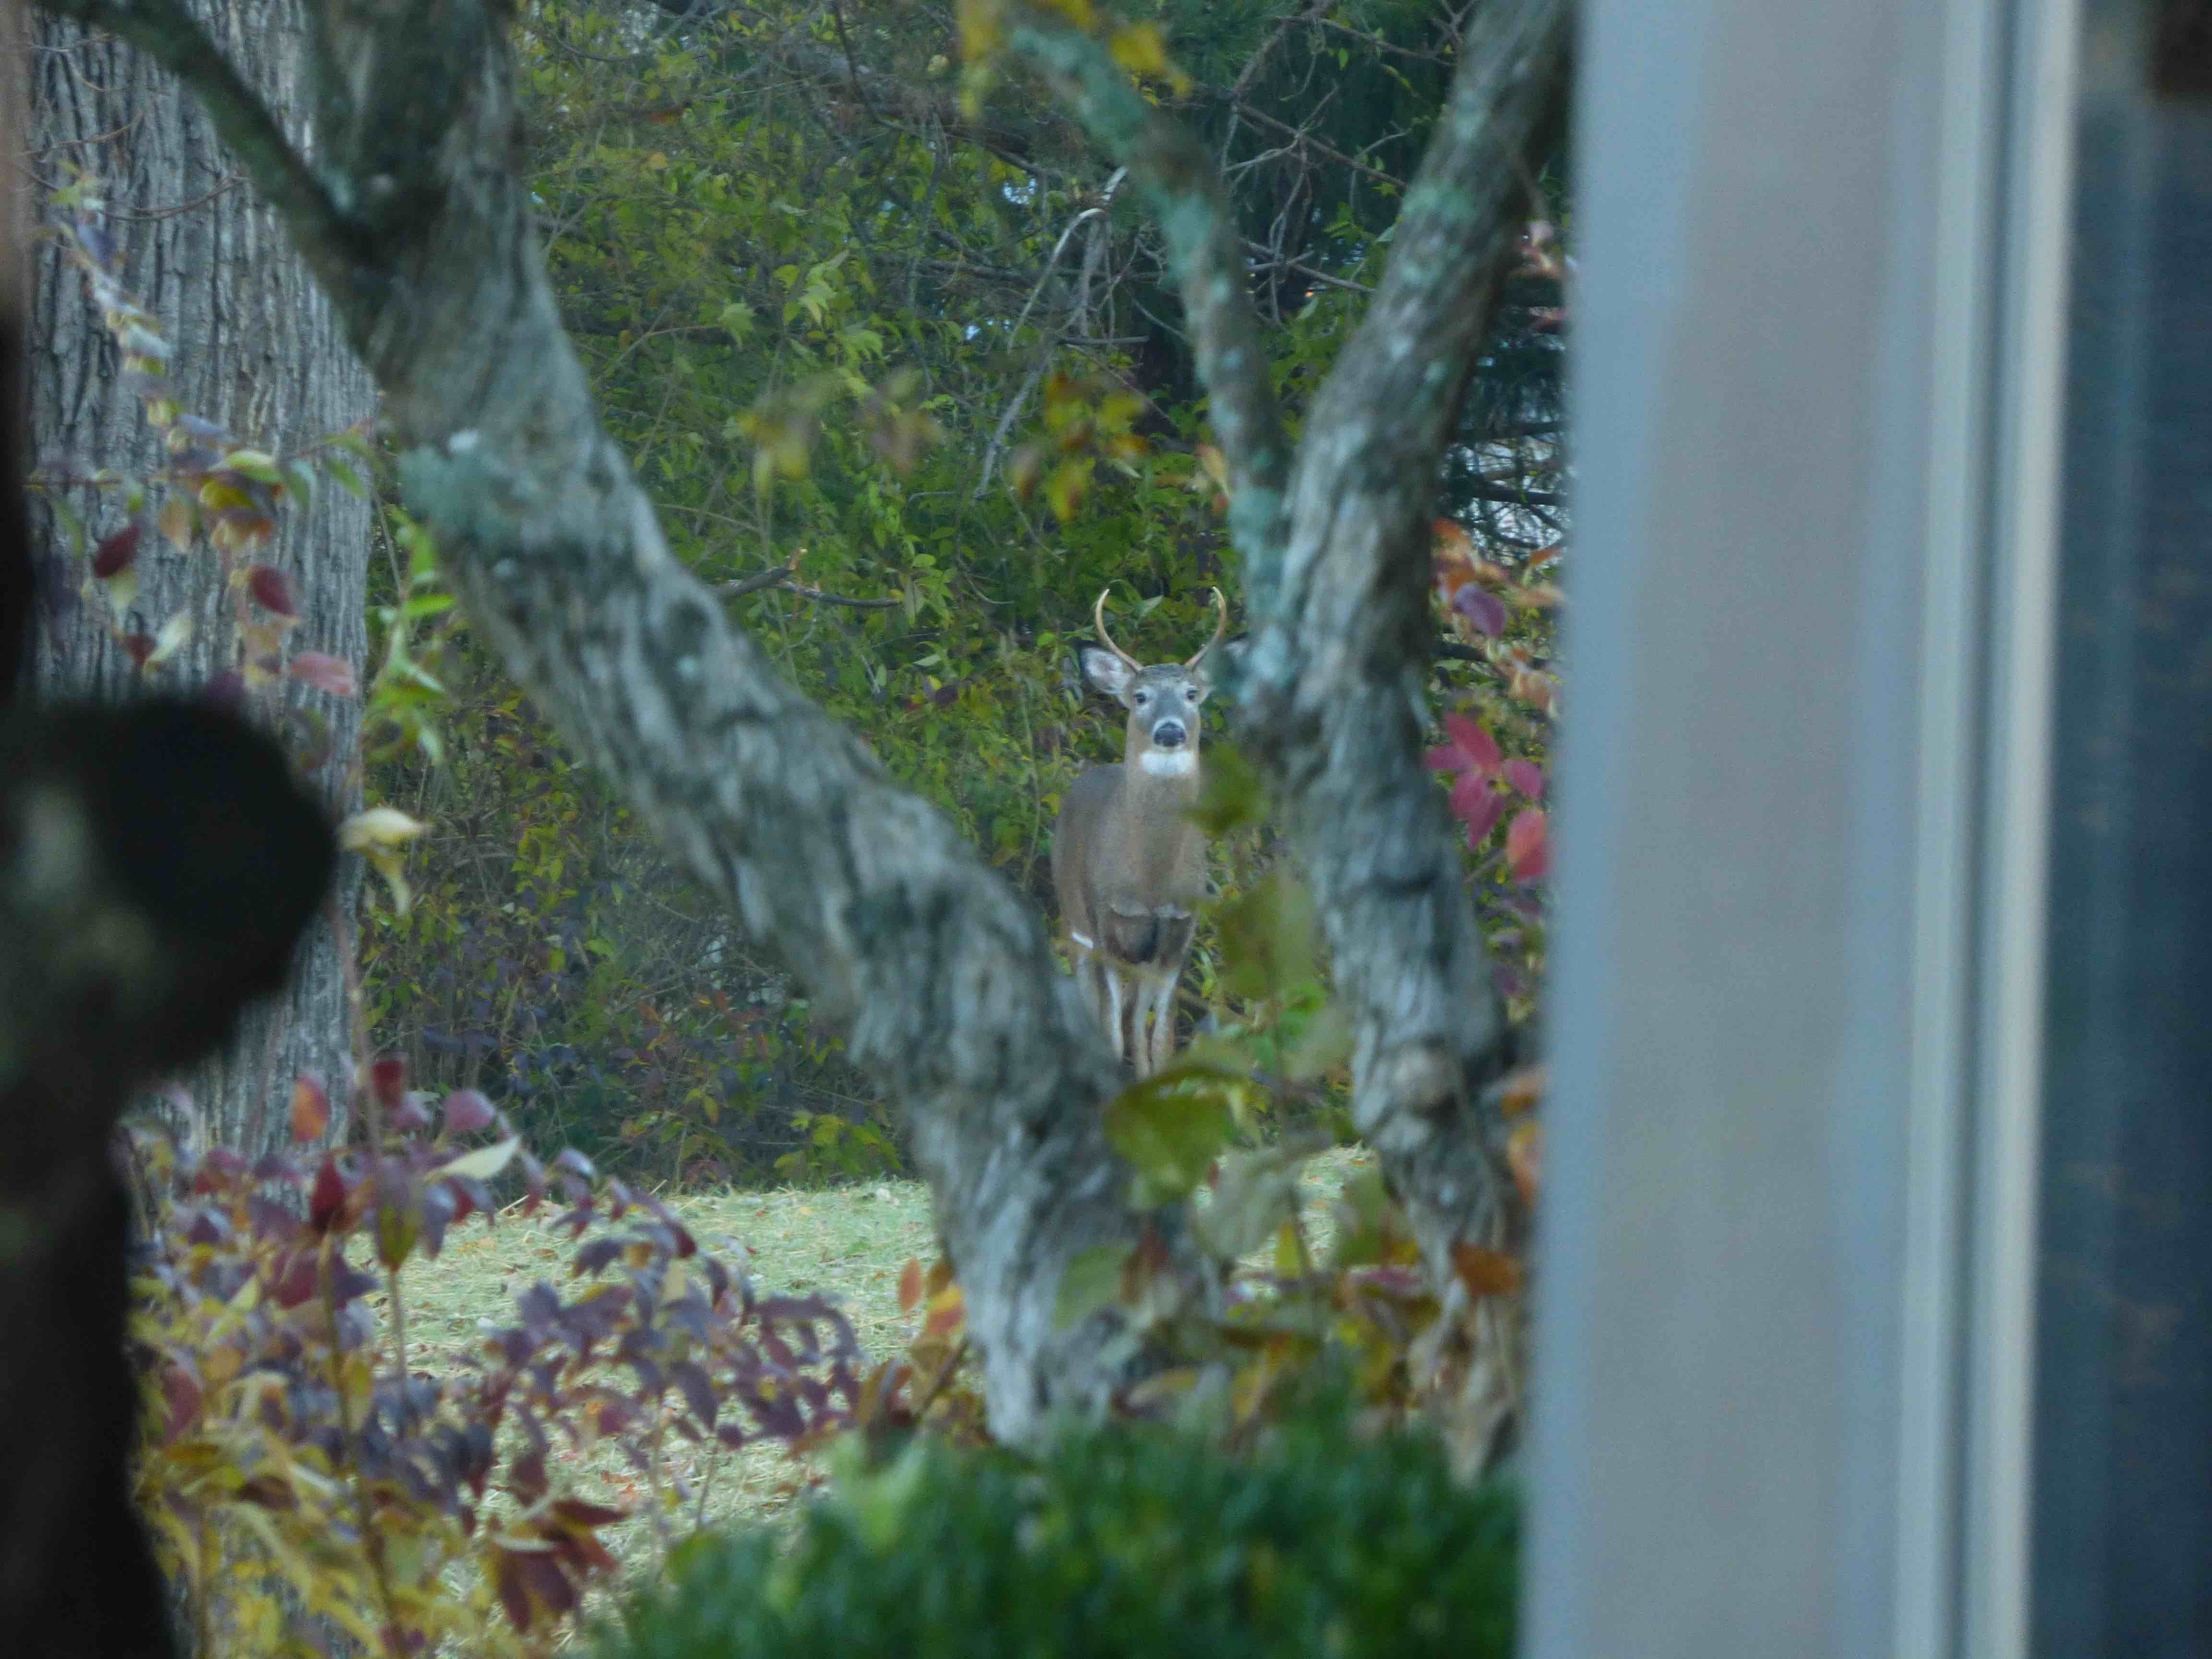 Deer looking through the window